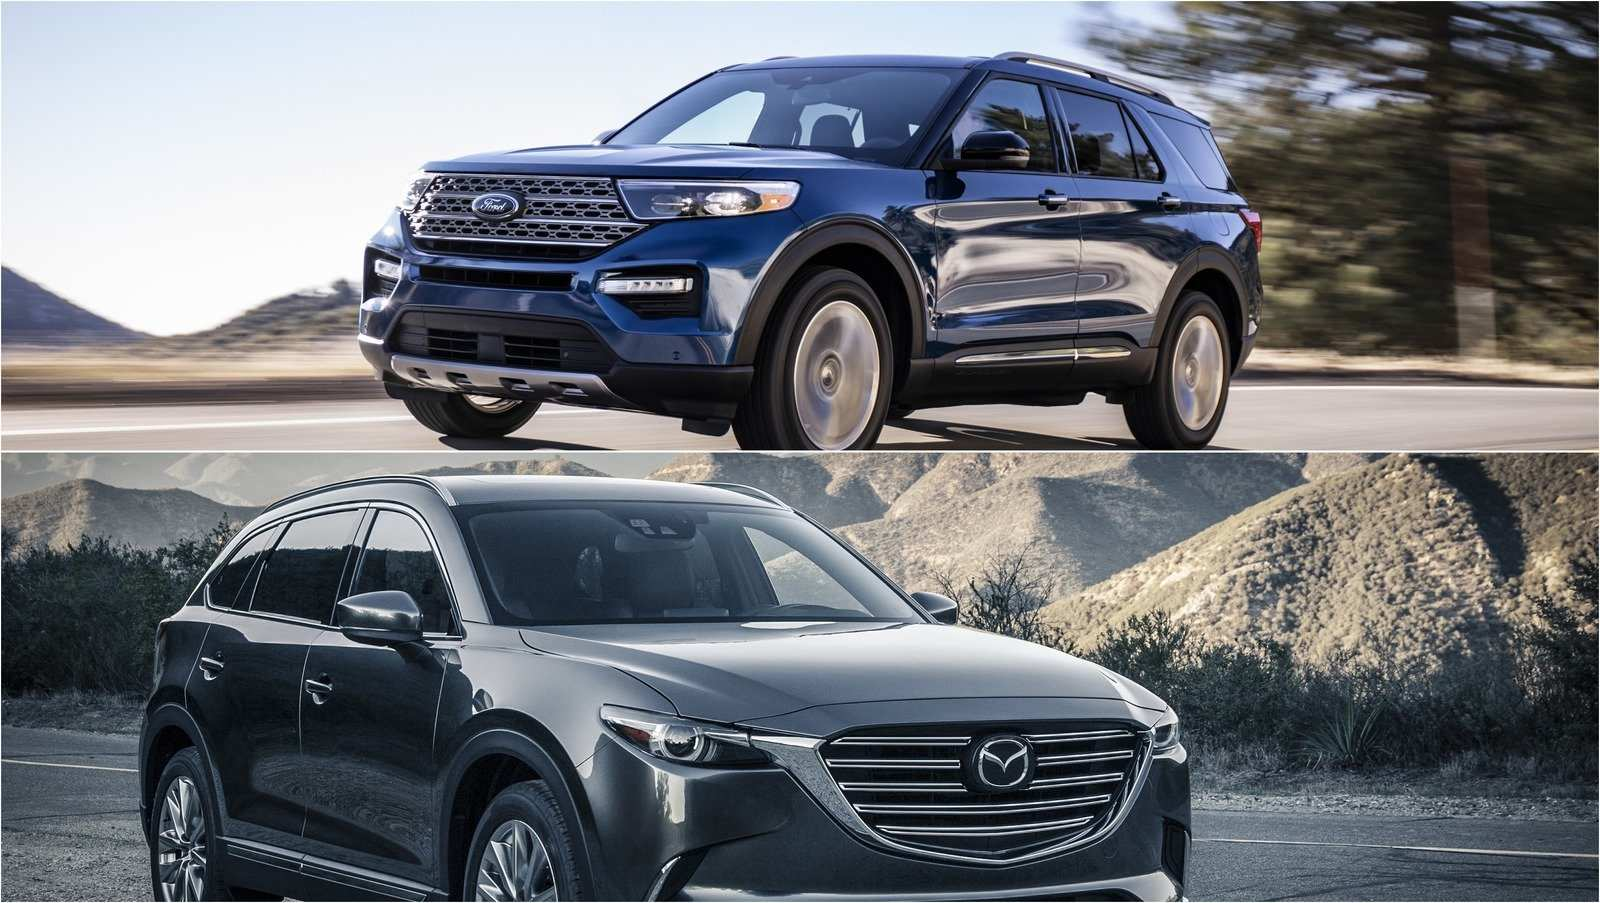 29 The 2020 Ford Escape Mazda Cx 5 Specs and Review with 2020 Ford Escape Mazda Cx 5